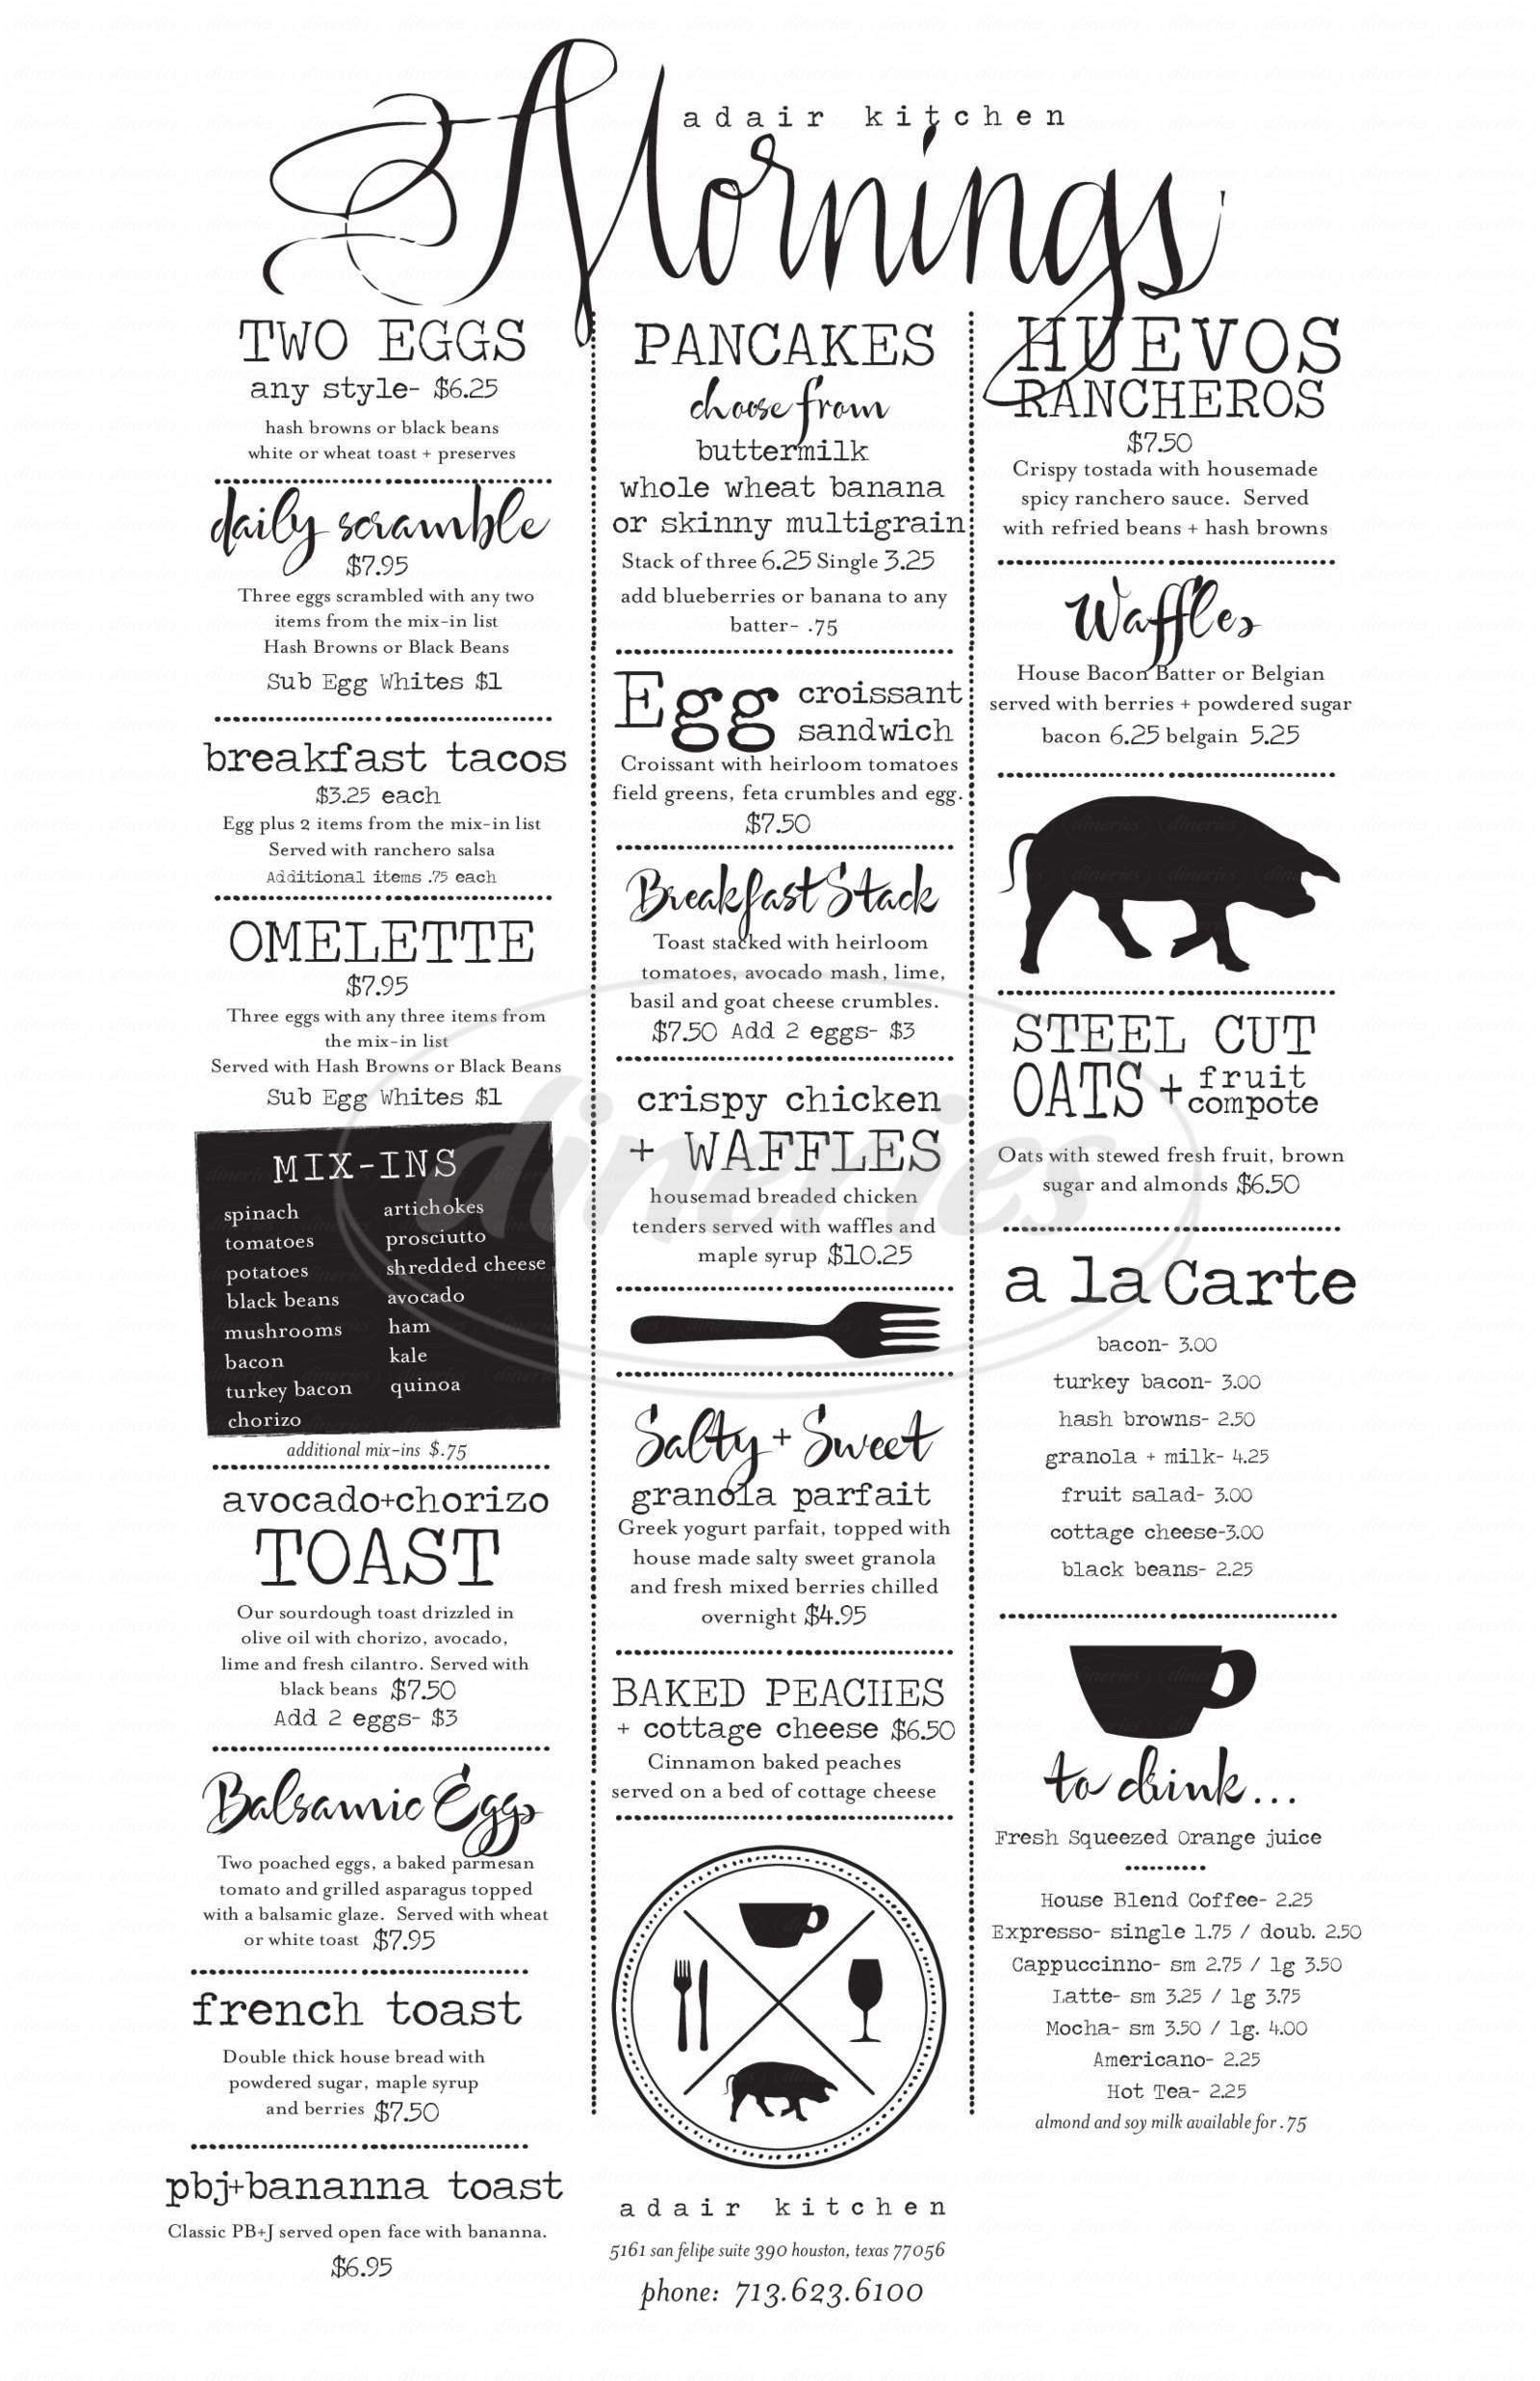 menu for Adair Kitchen